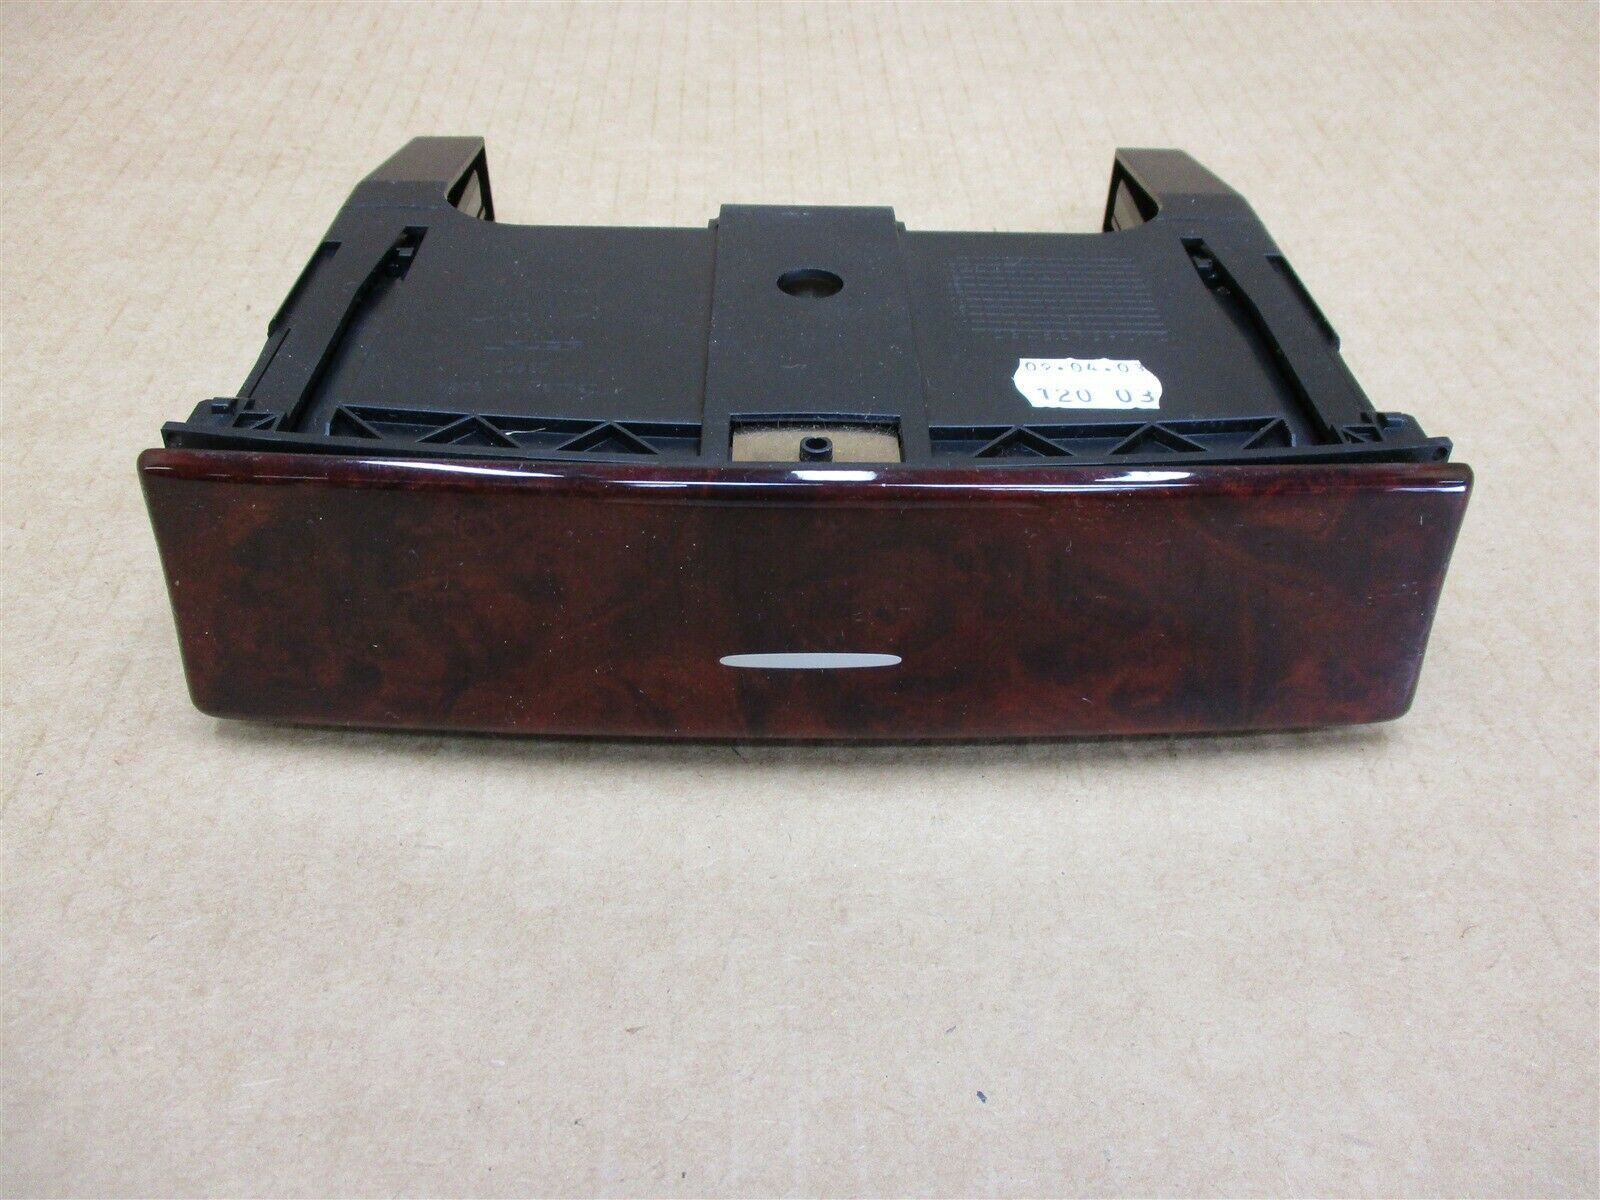 04 Cayenne Turbo AWD Porsche 955 Wood CONSOLE CUP HOLDER TRIM 7L5862532 89,934